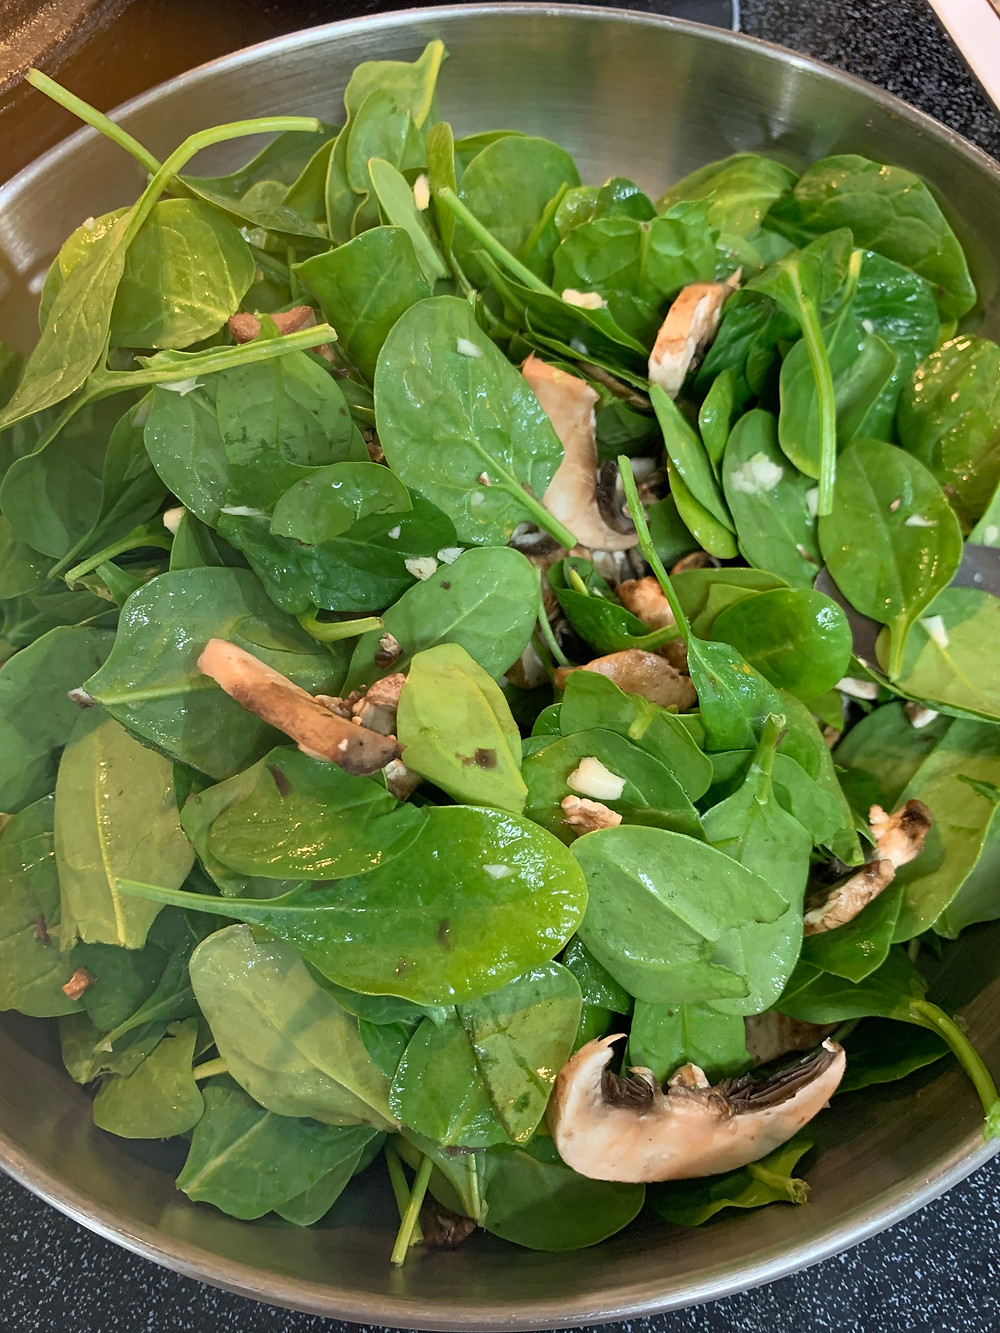 Spinach, mushrooms and garlic before cooking